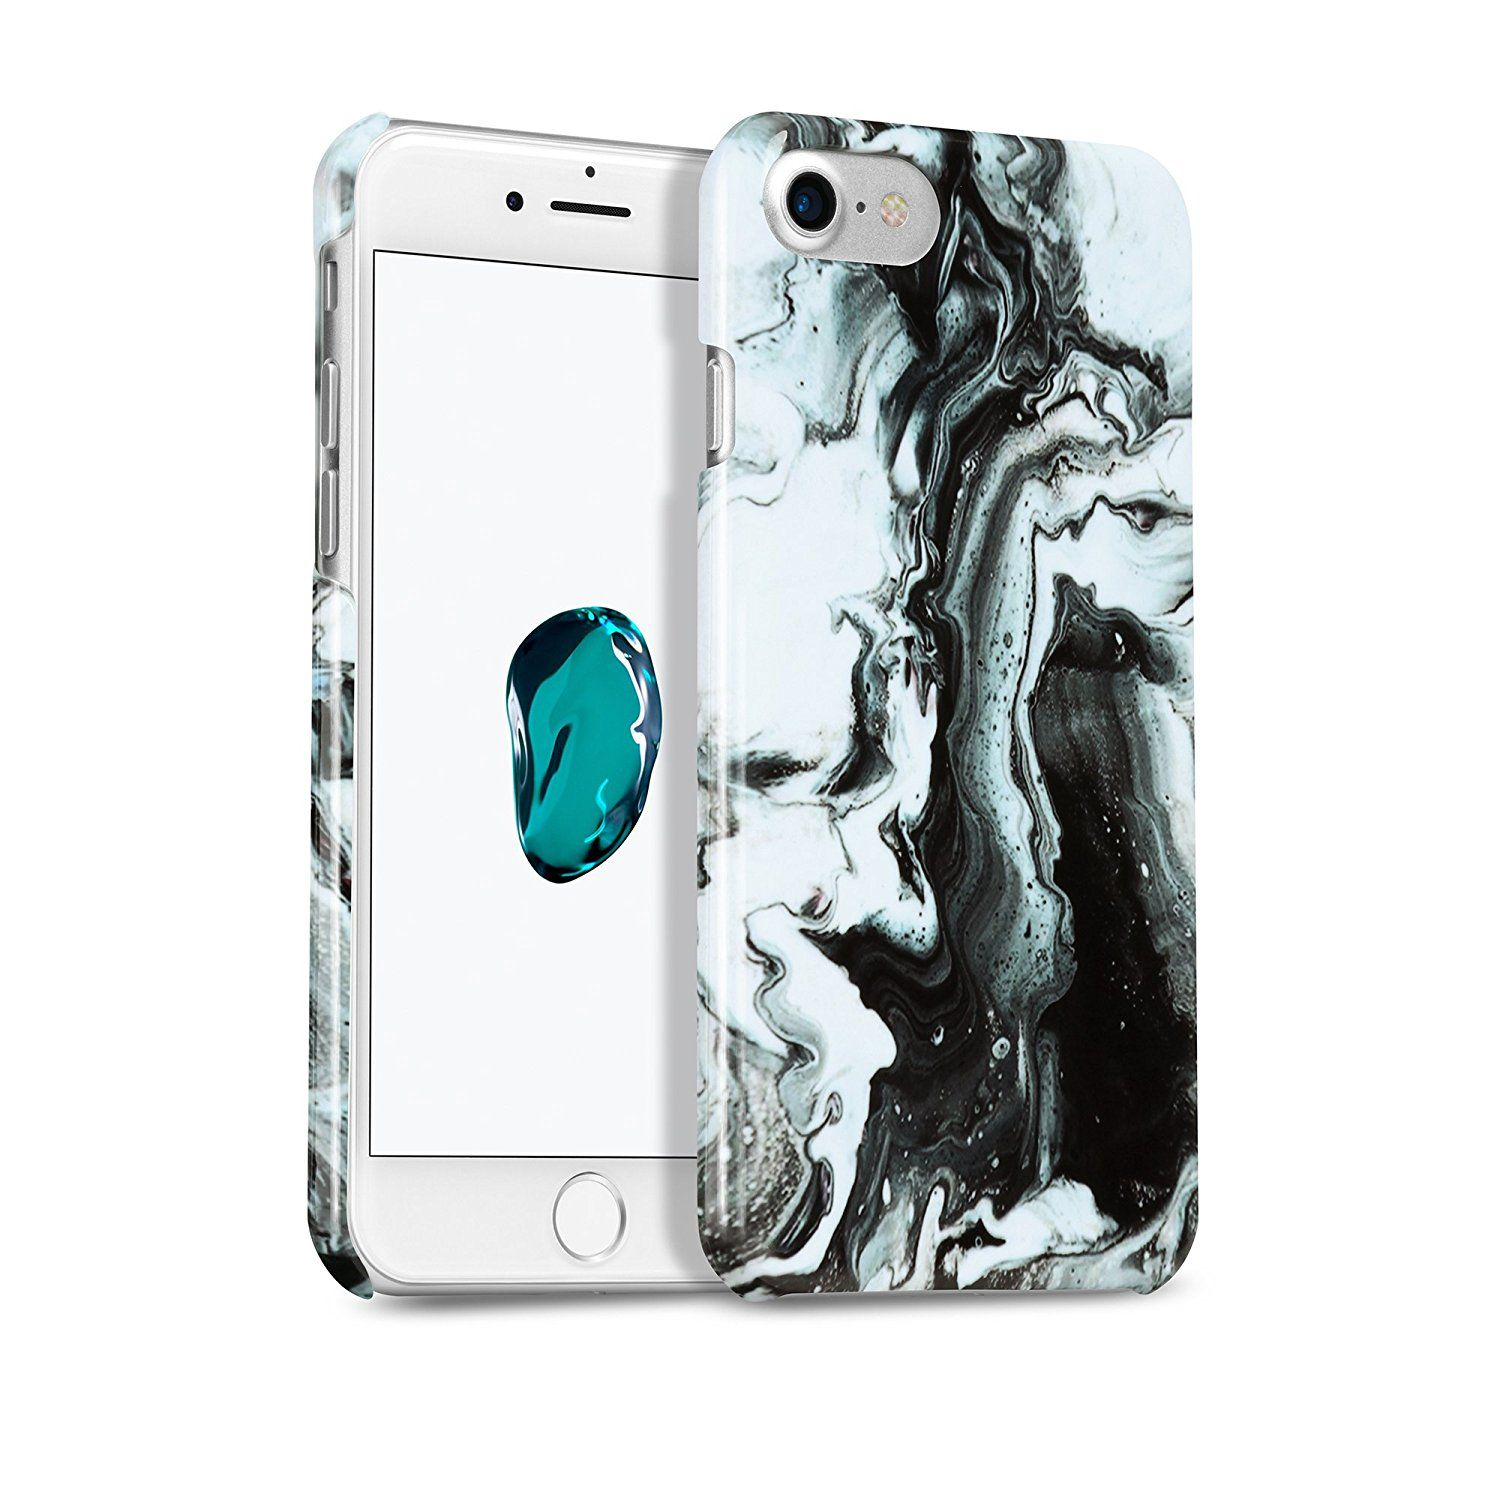 premium selection 6f281 c0fe2 iPhone 7 Case, iPhone 8 Case, GMYLE [Black Water Marble] Slim Glossy ...